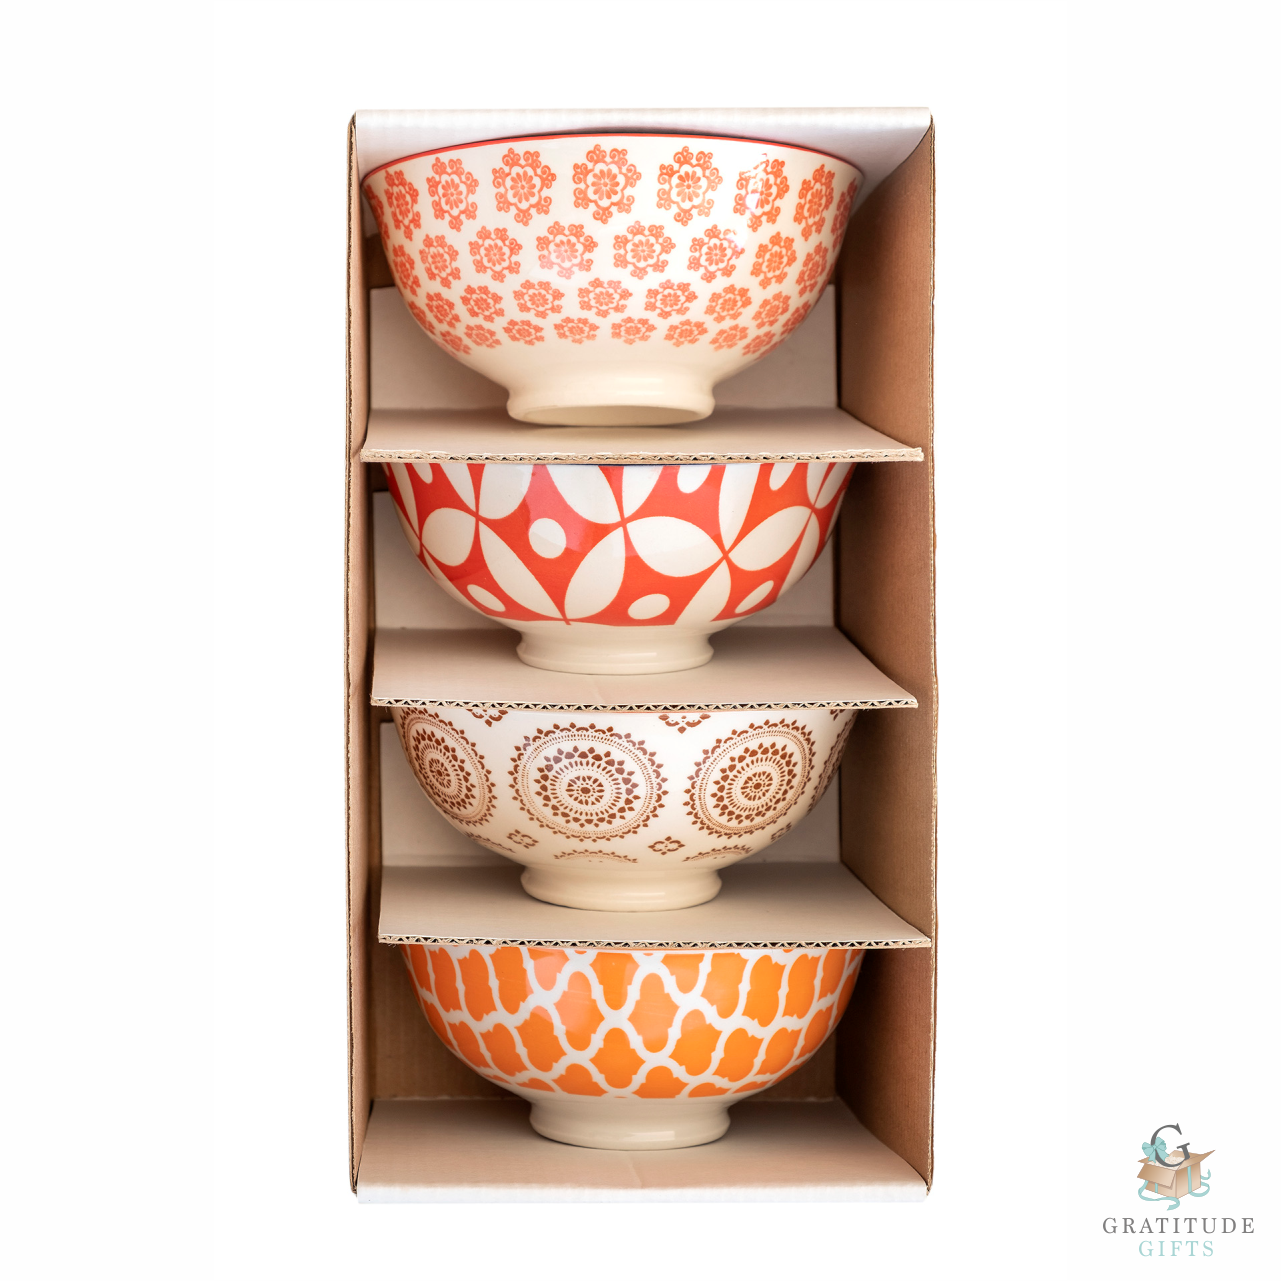 Small Ceramic Bowl Box Set - Orange & Brown Mix